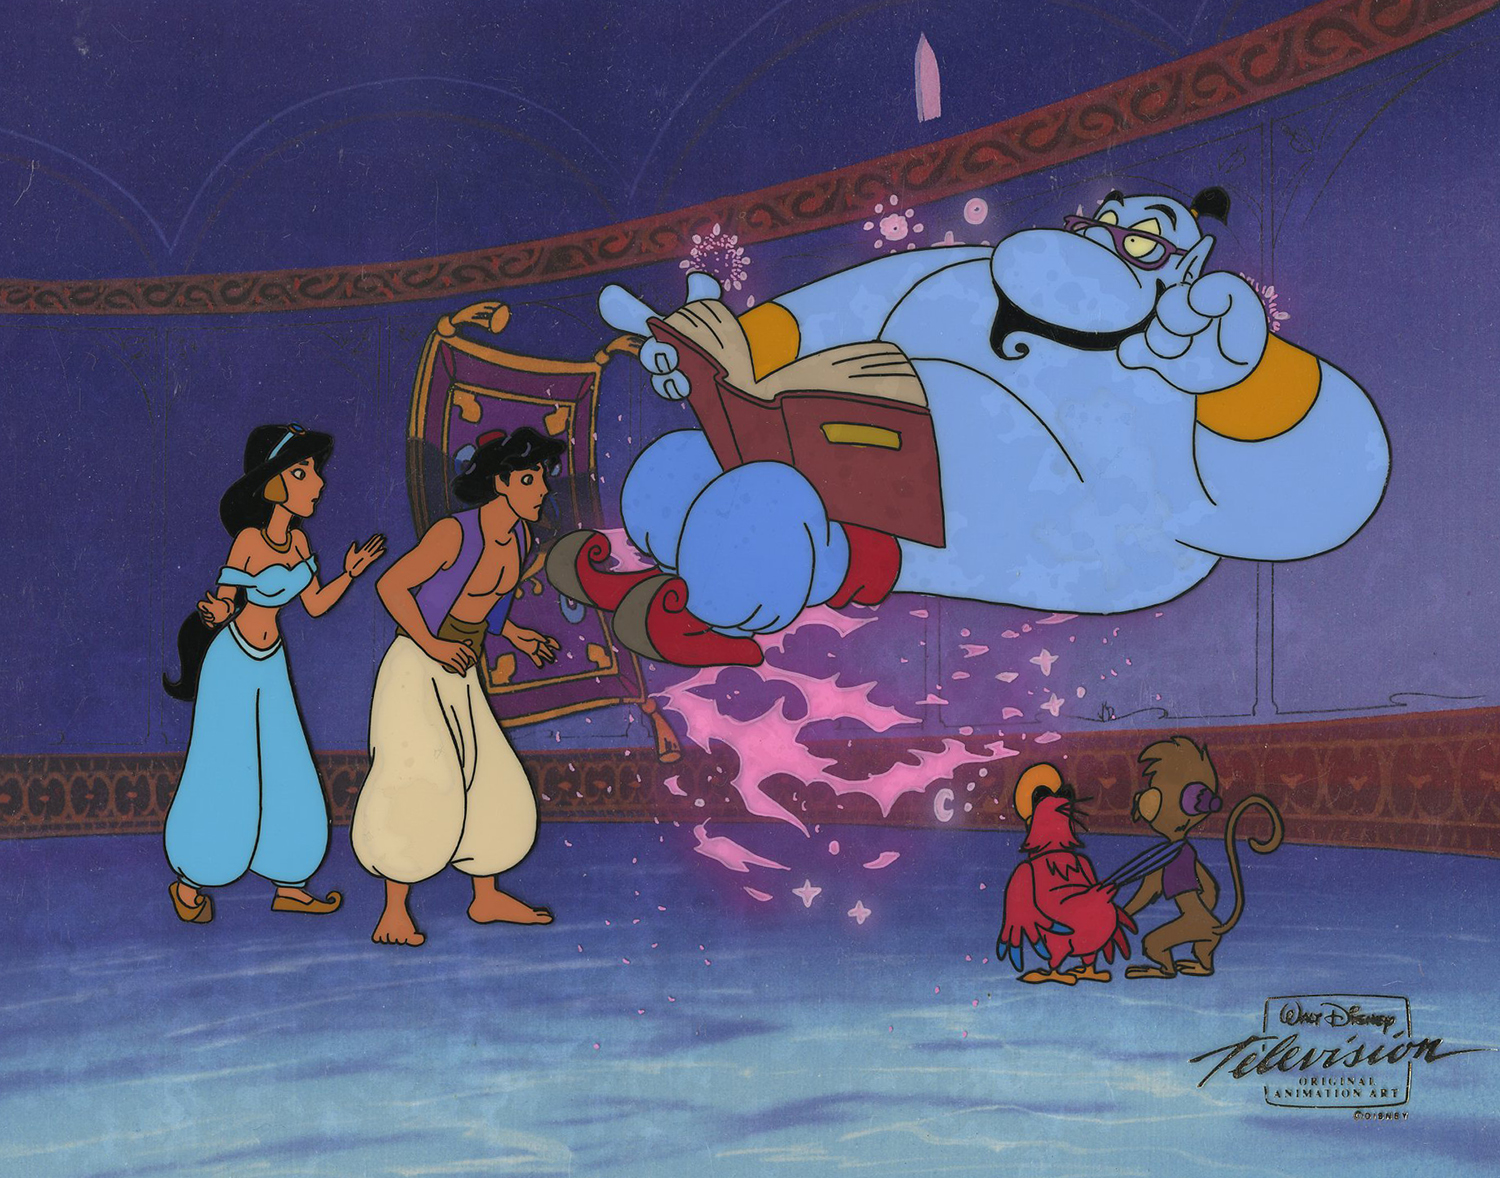 aladdin tv series production cel id decaladdin6743 van eaton